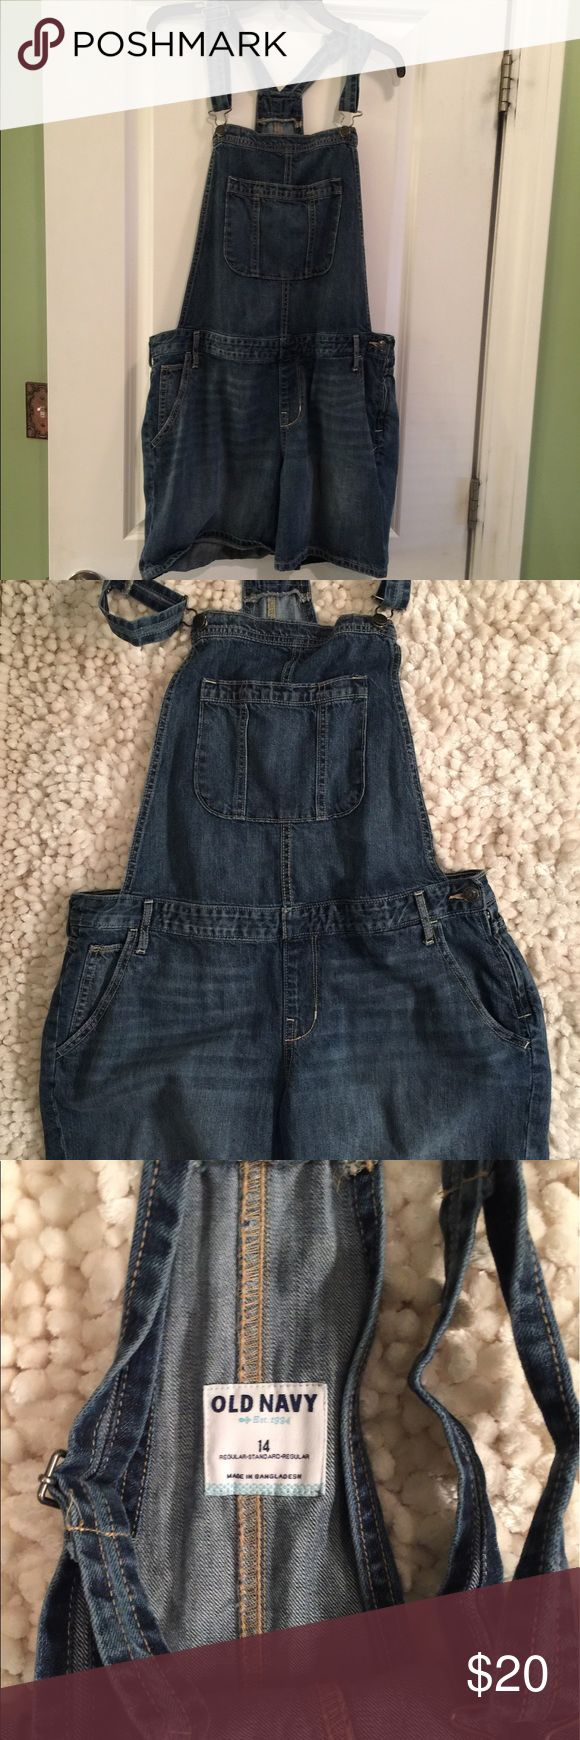 Women's Old Navy overalls Size 14 Size 14 Old Navy overalls Old Navy Jeans